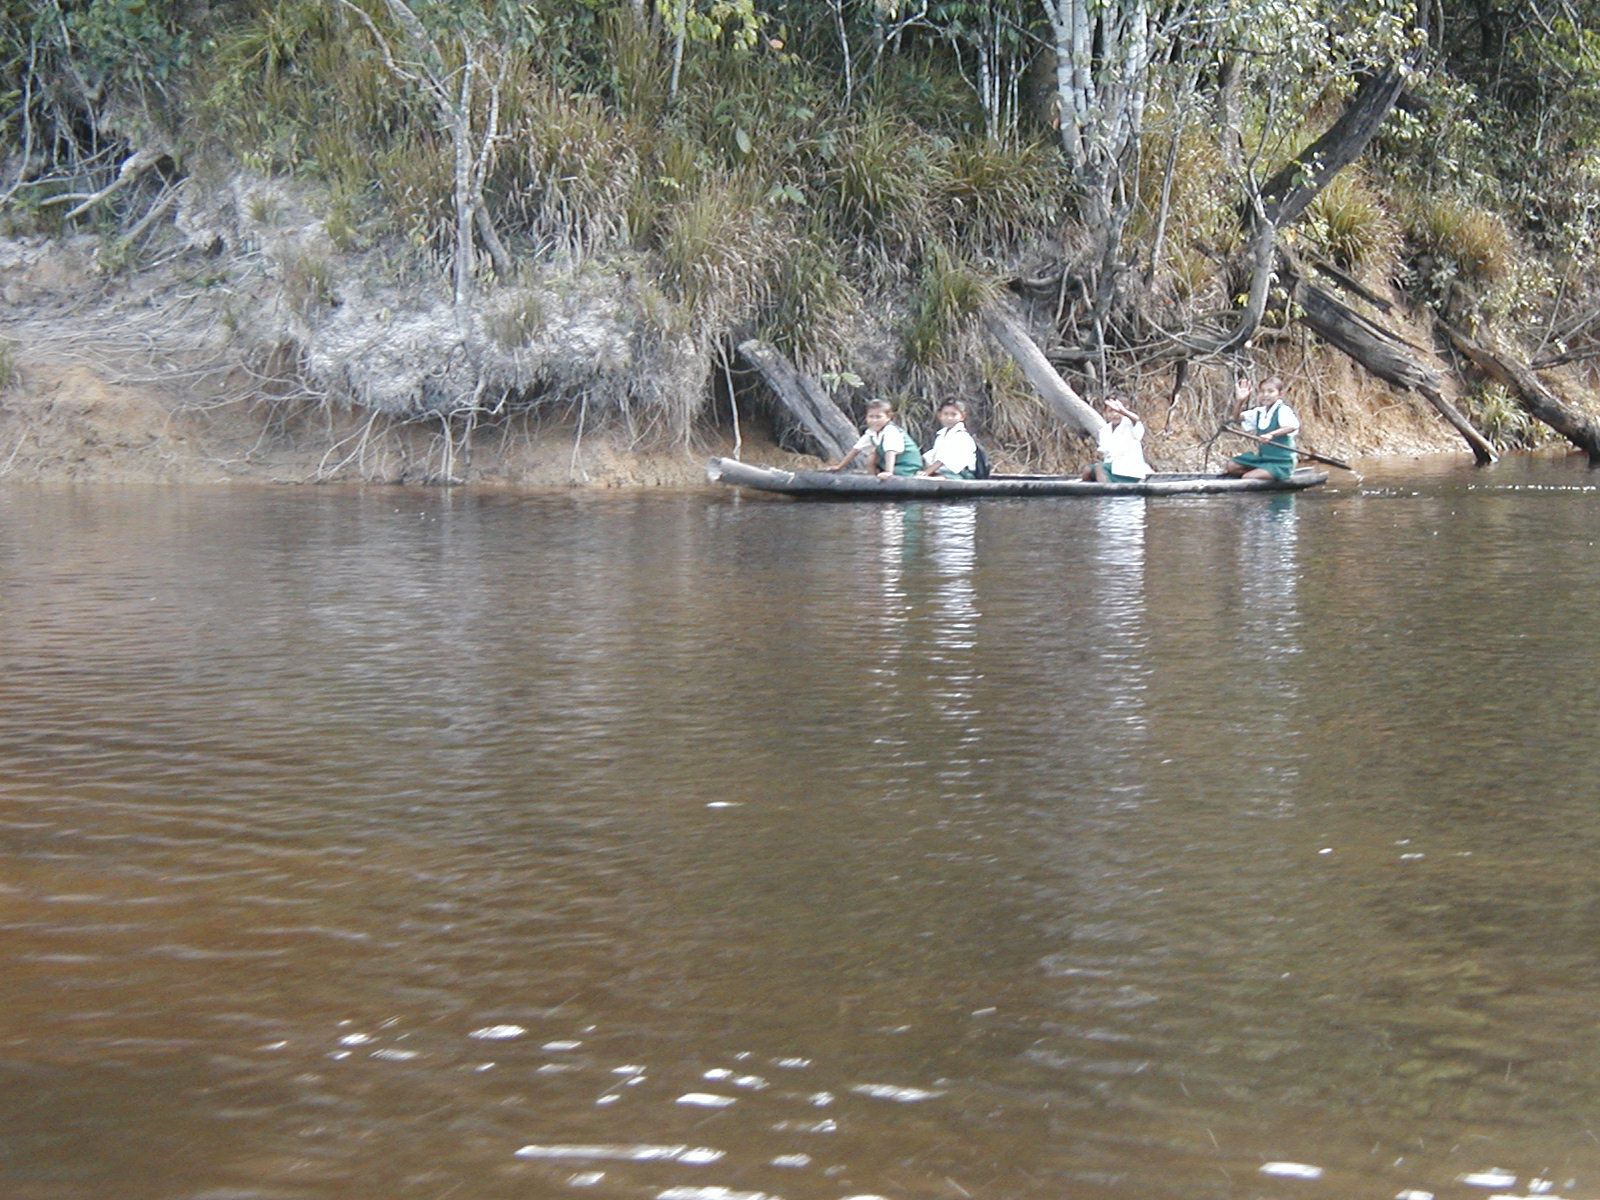 Jawalla schoolchildren on their way to school in a woodskin canoe